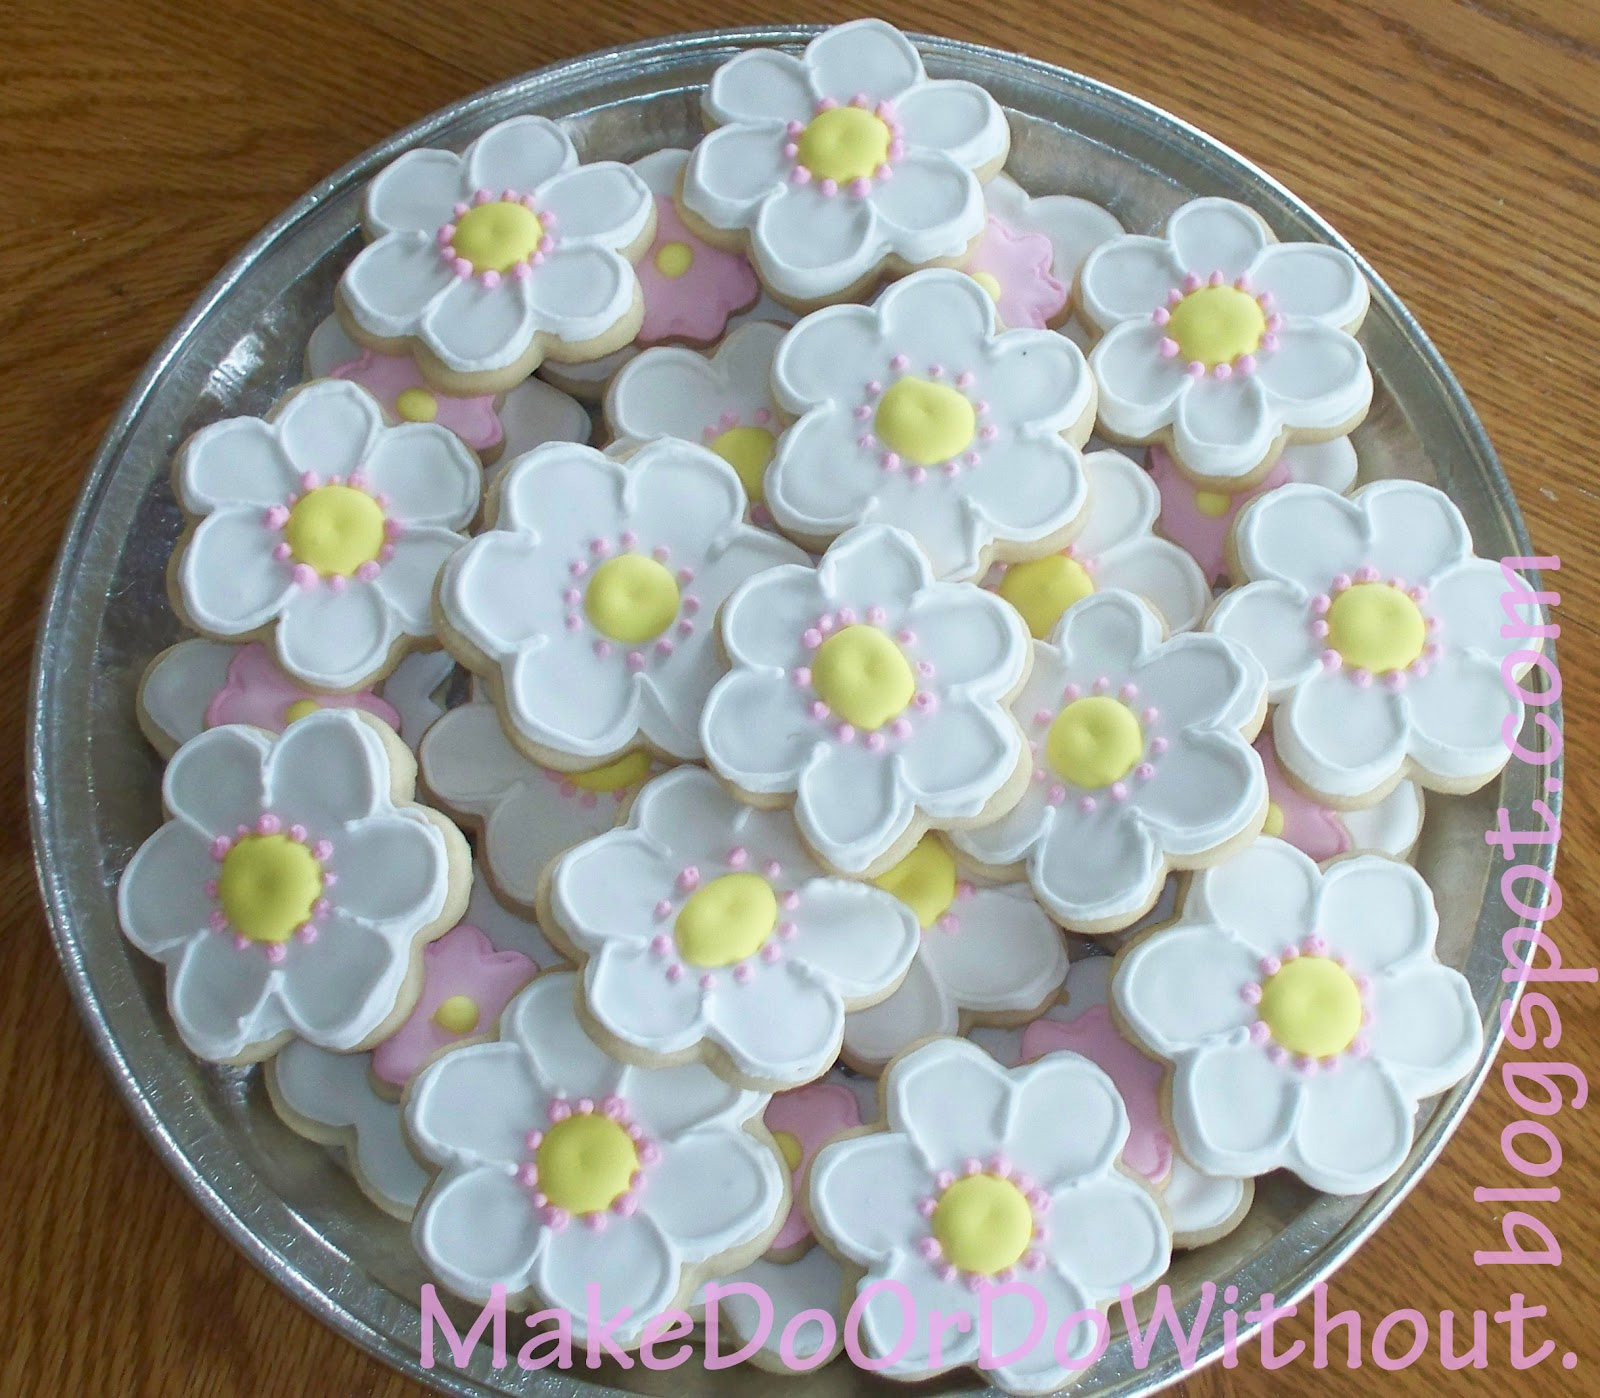 Make Do Spring Flower Cookies